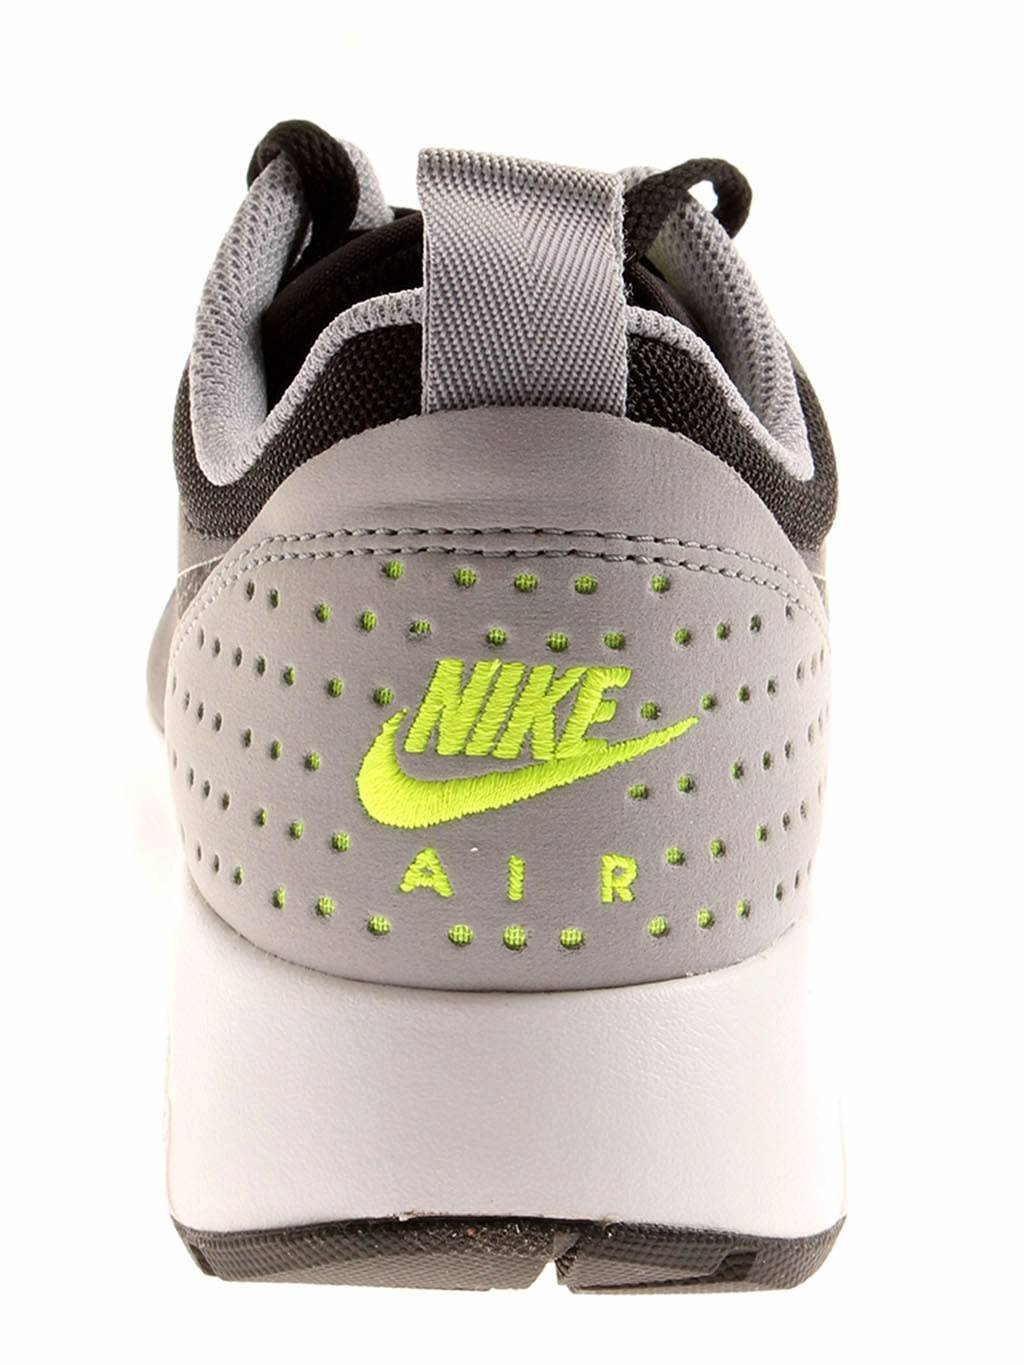 huge discount 402f9 6d796 Nike-Air-Max-Tavas-Zapatillas-de-Deporte-Zapatos-